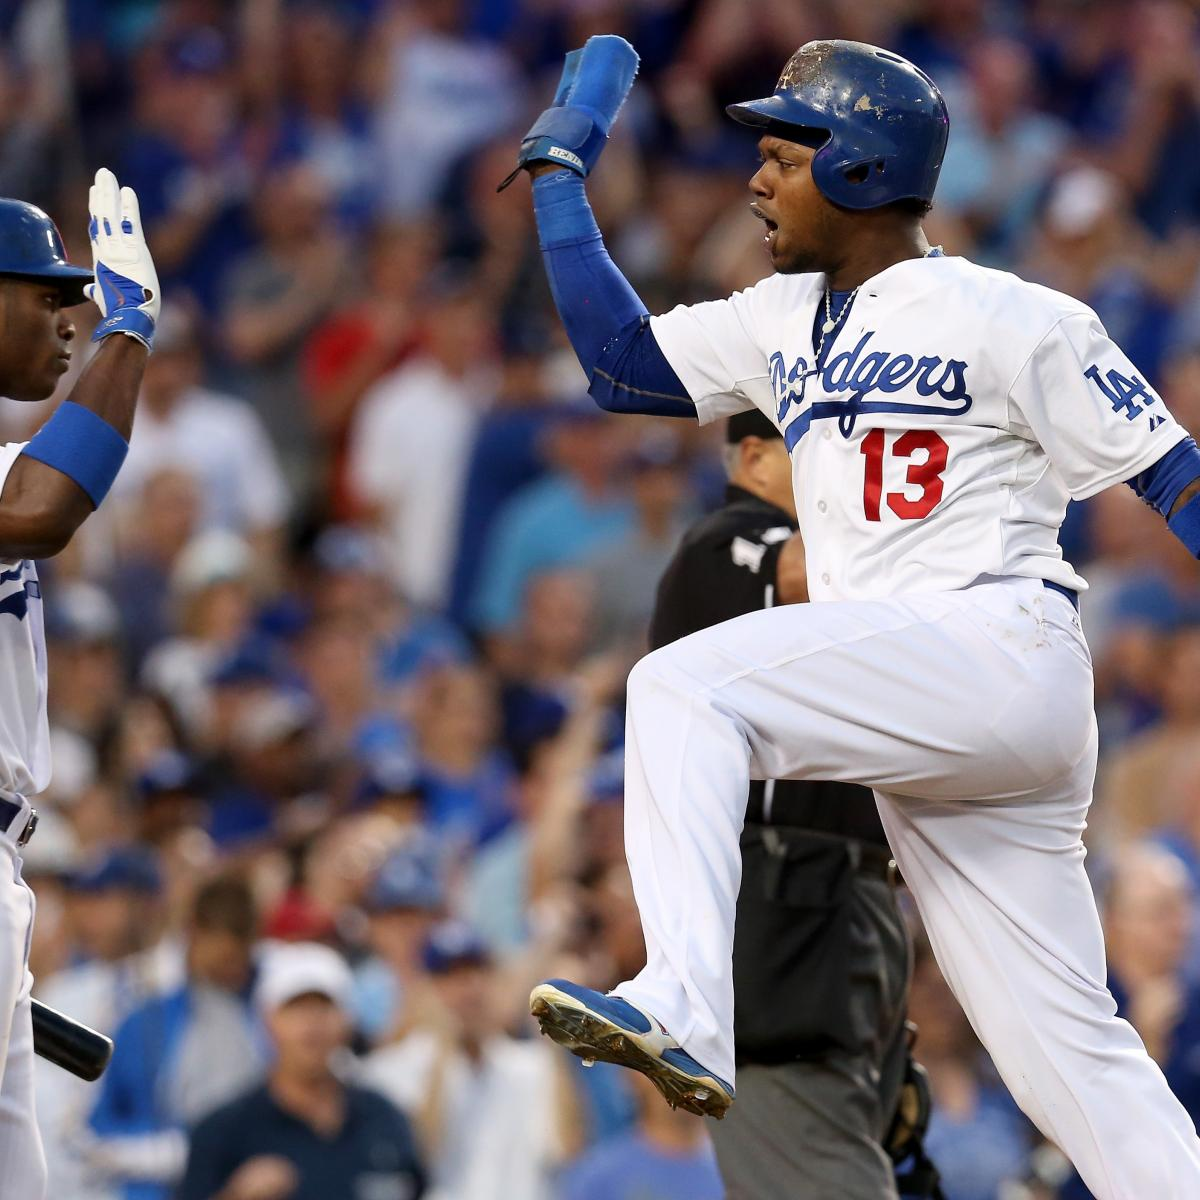 Your best source for quality Los Angeles Dodgers news rumors analysis stats and scores from the fan perspective